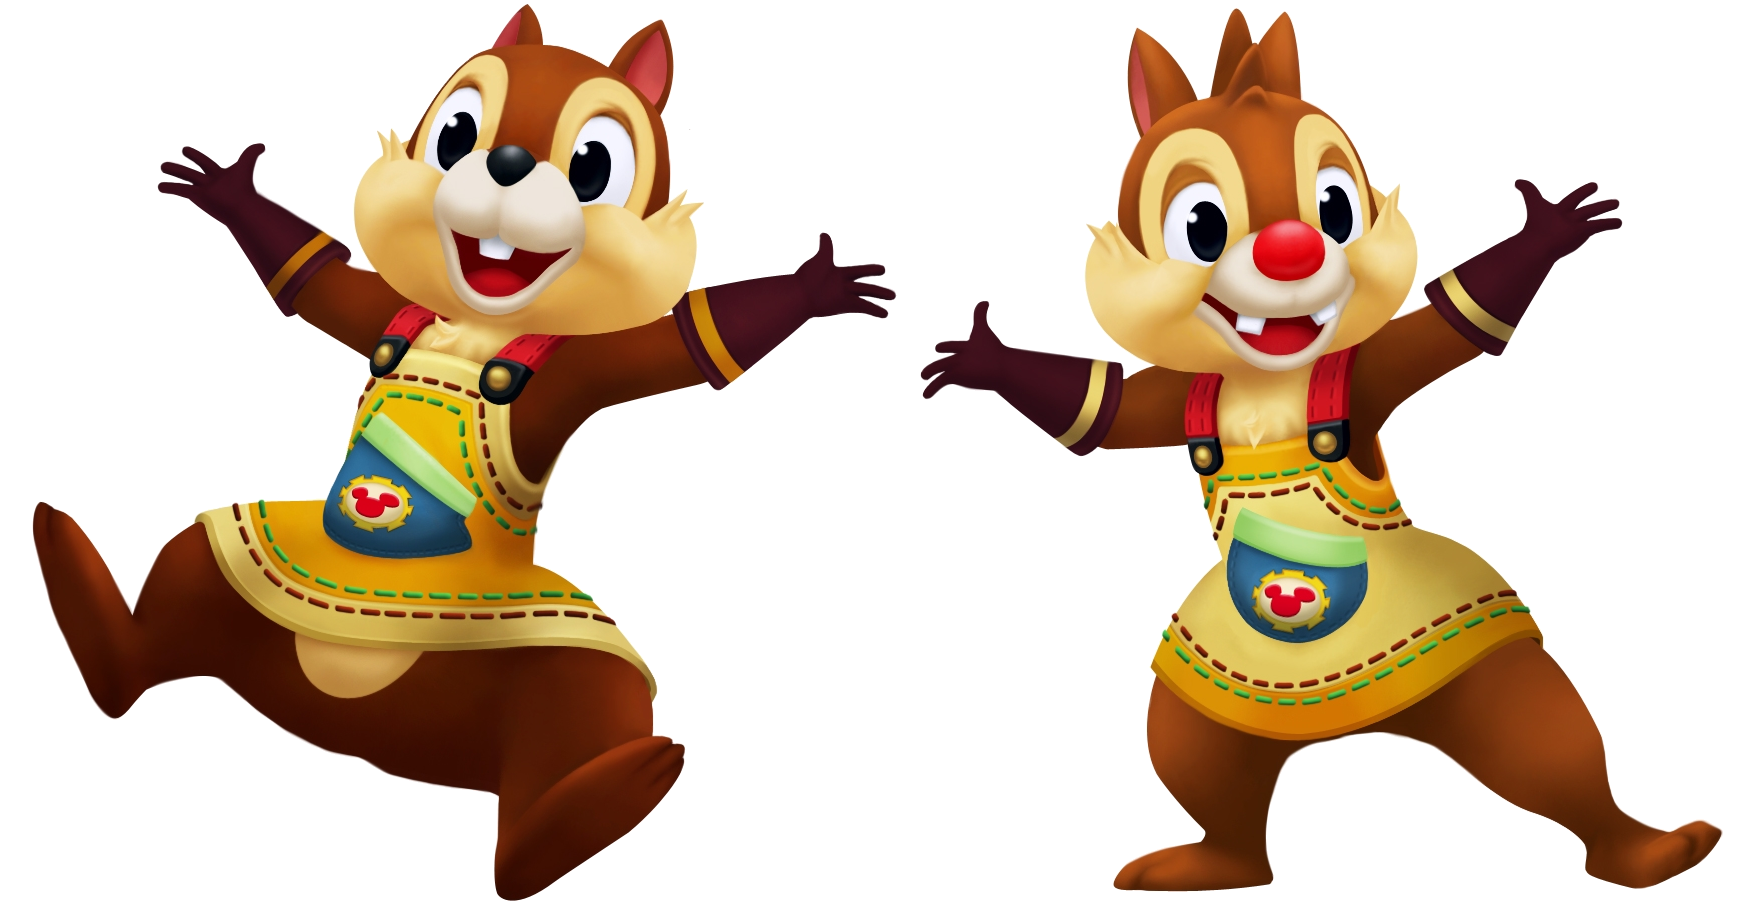 Nut clipart chip dale. Image chipanddale kh png